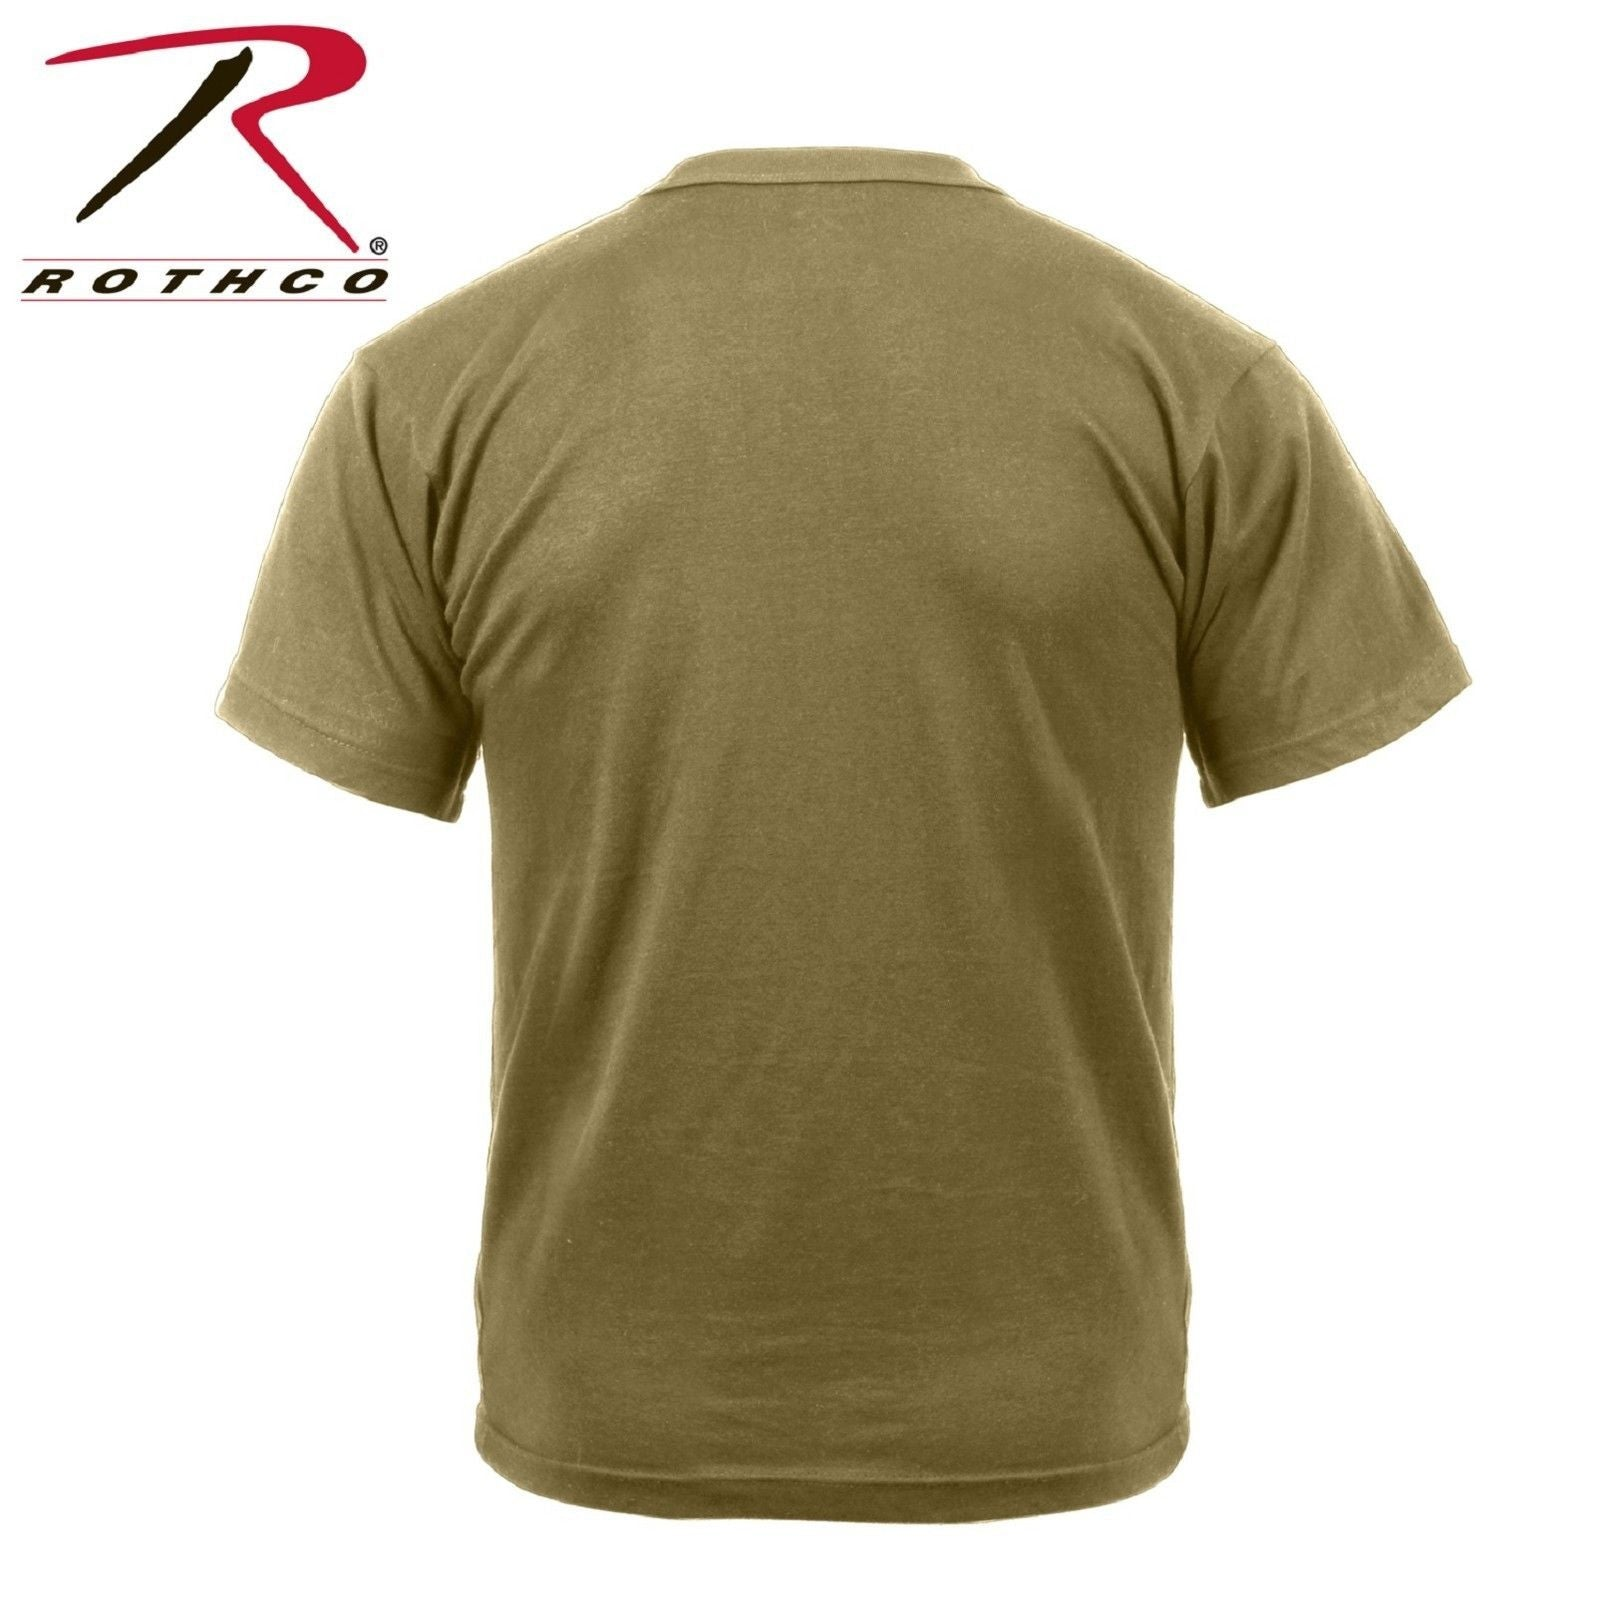 c2d8a743 ... Mens USMC Rifleman's Creed THIS IS MY RIFLE T-Shirt - Rothco Military Tee  Shirt